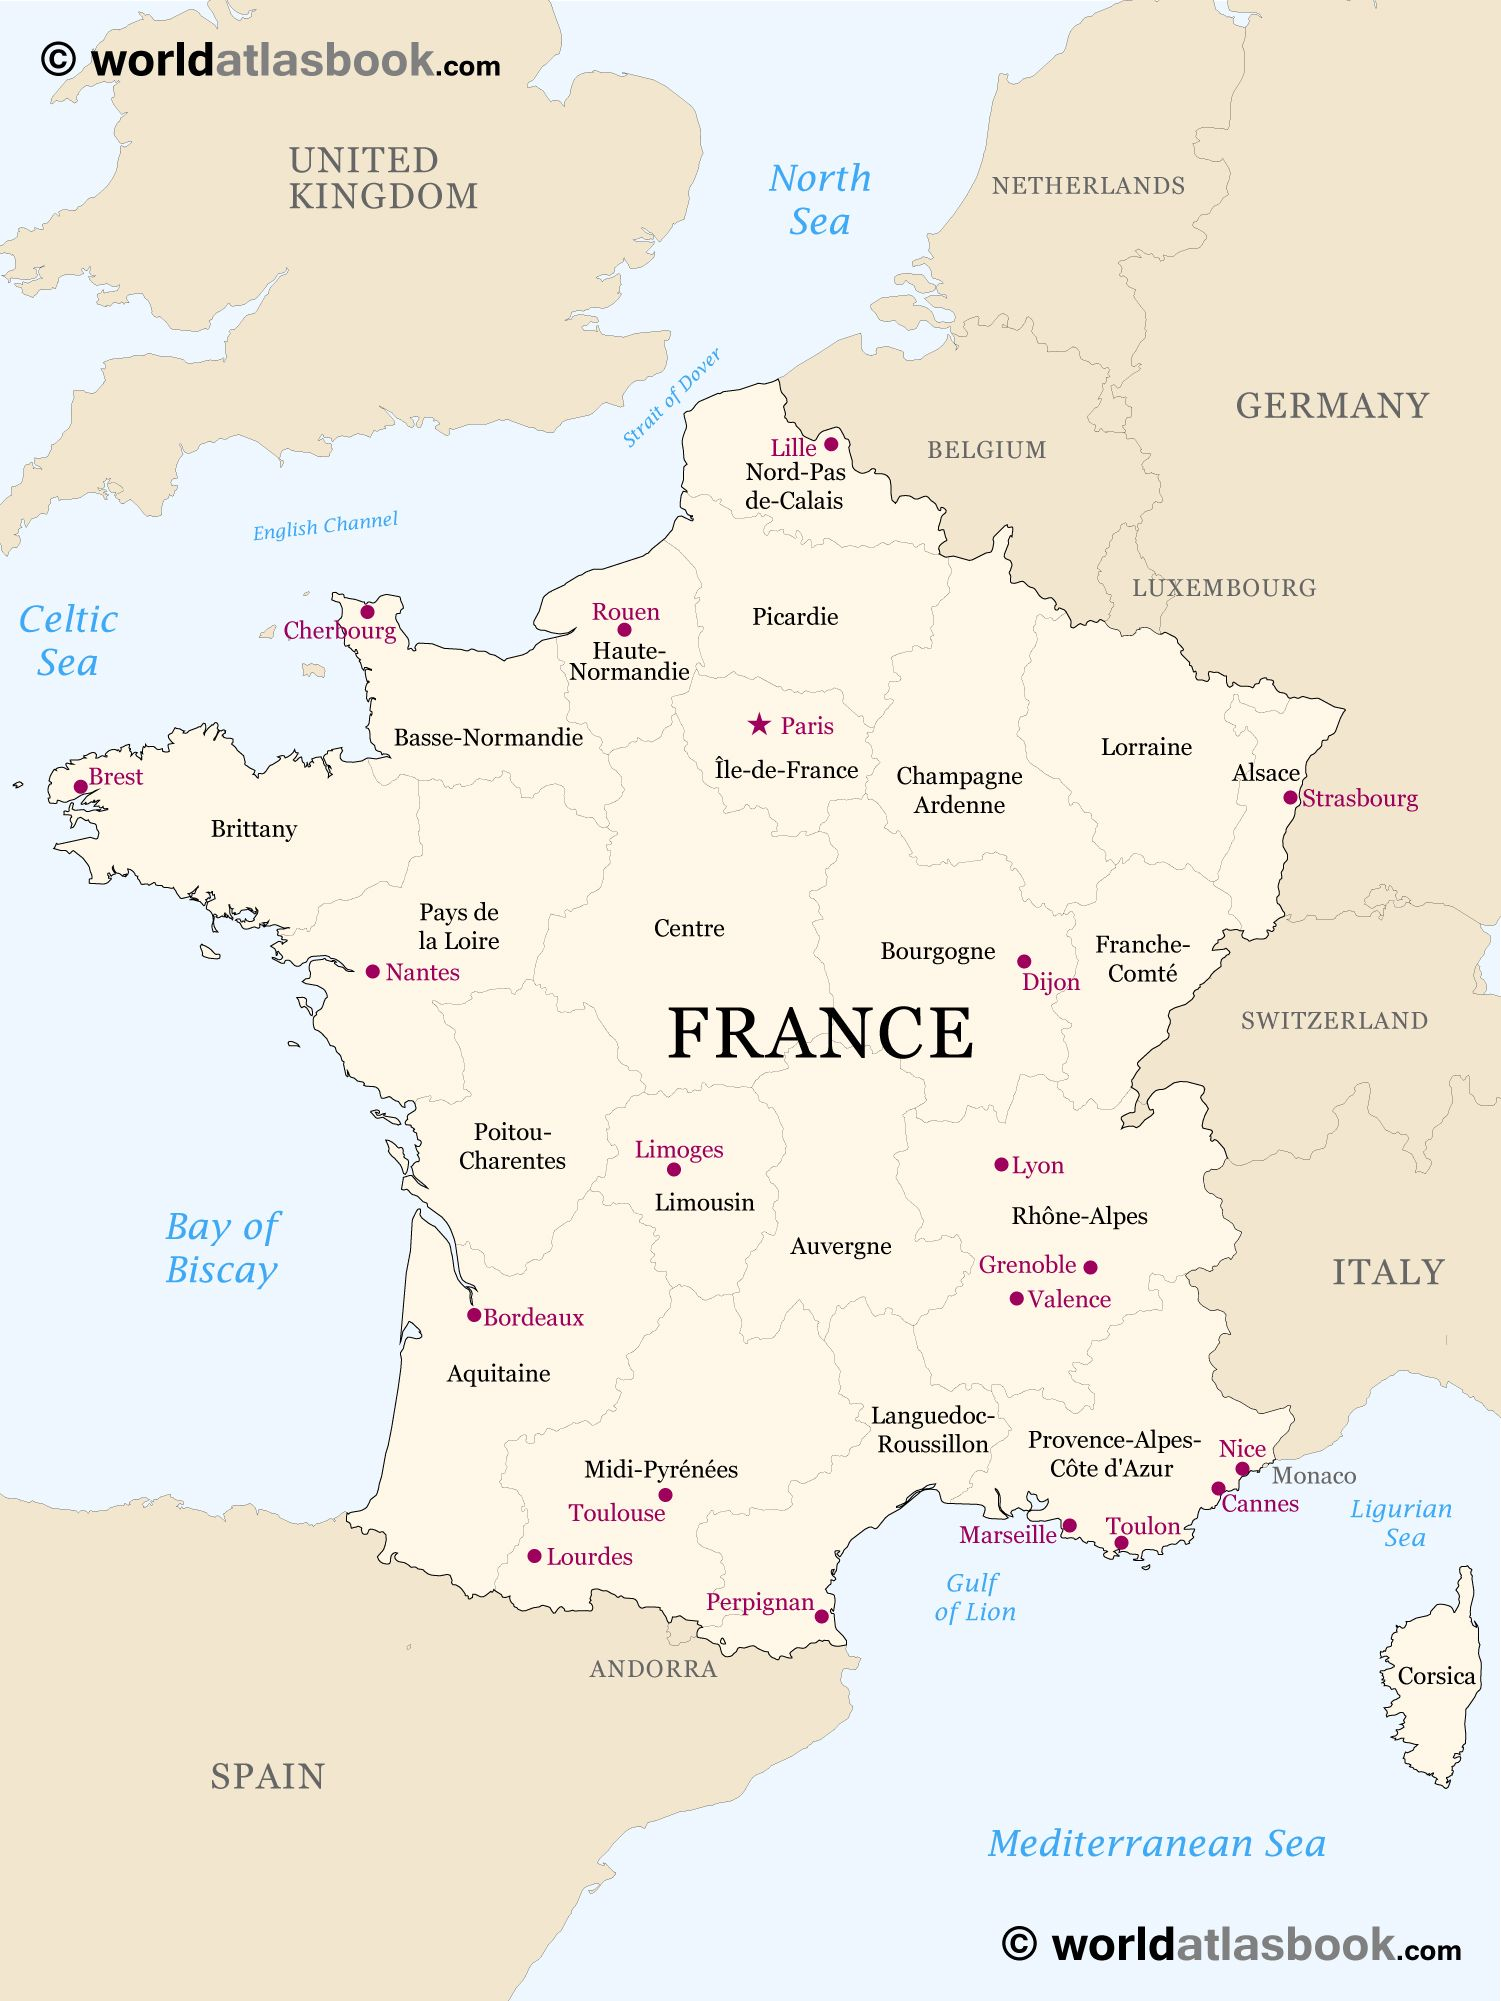 Map Of France And Europe.Printable Outline Maps For Kids Map Of France Outline Blank Map Of